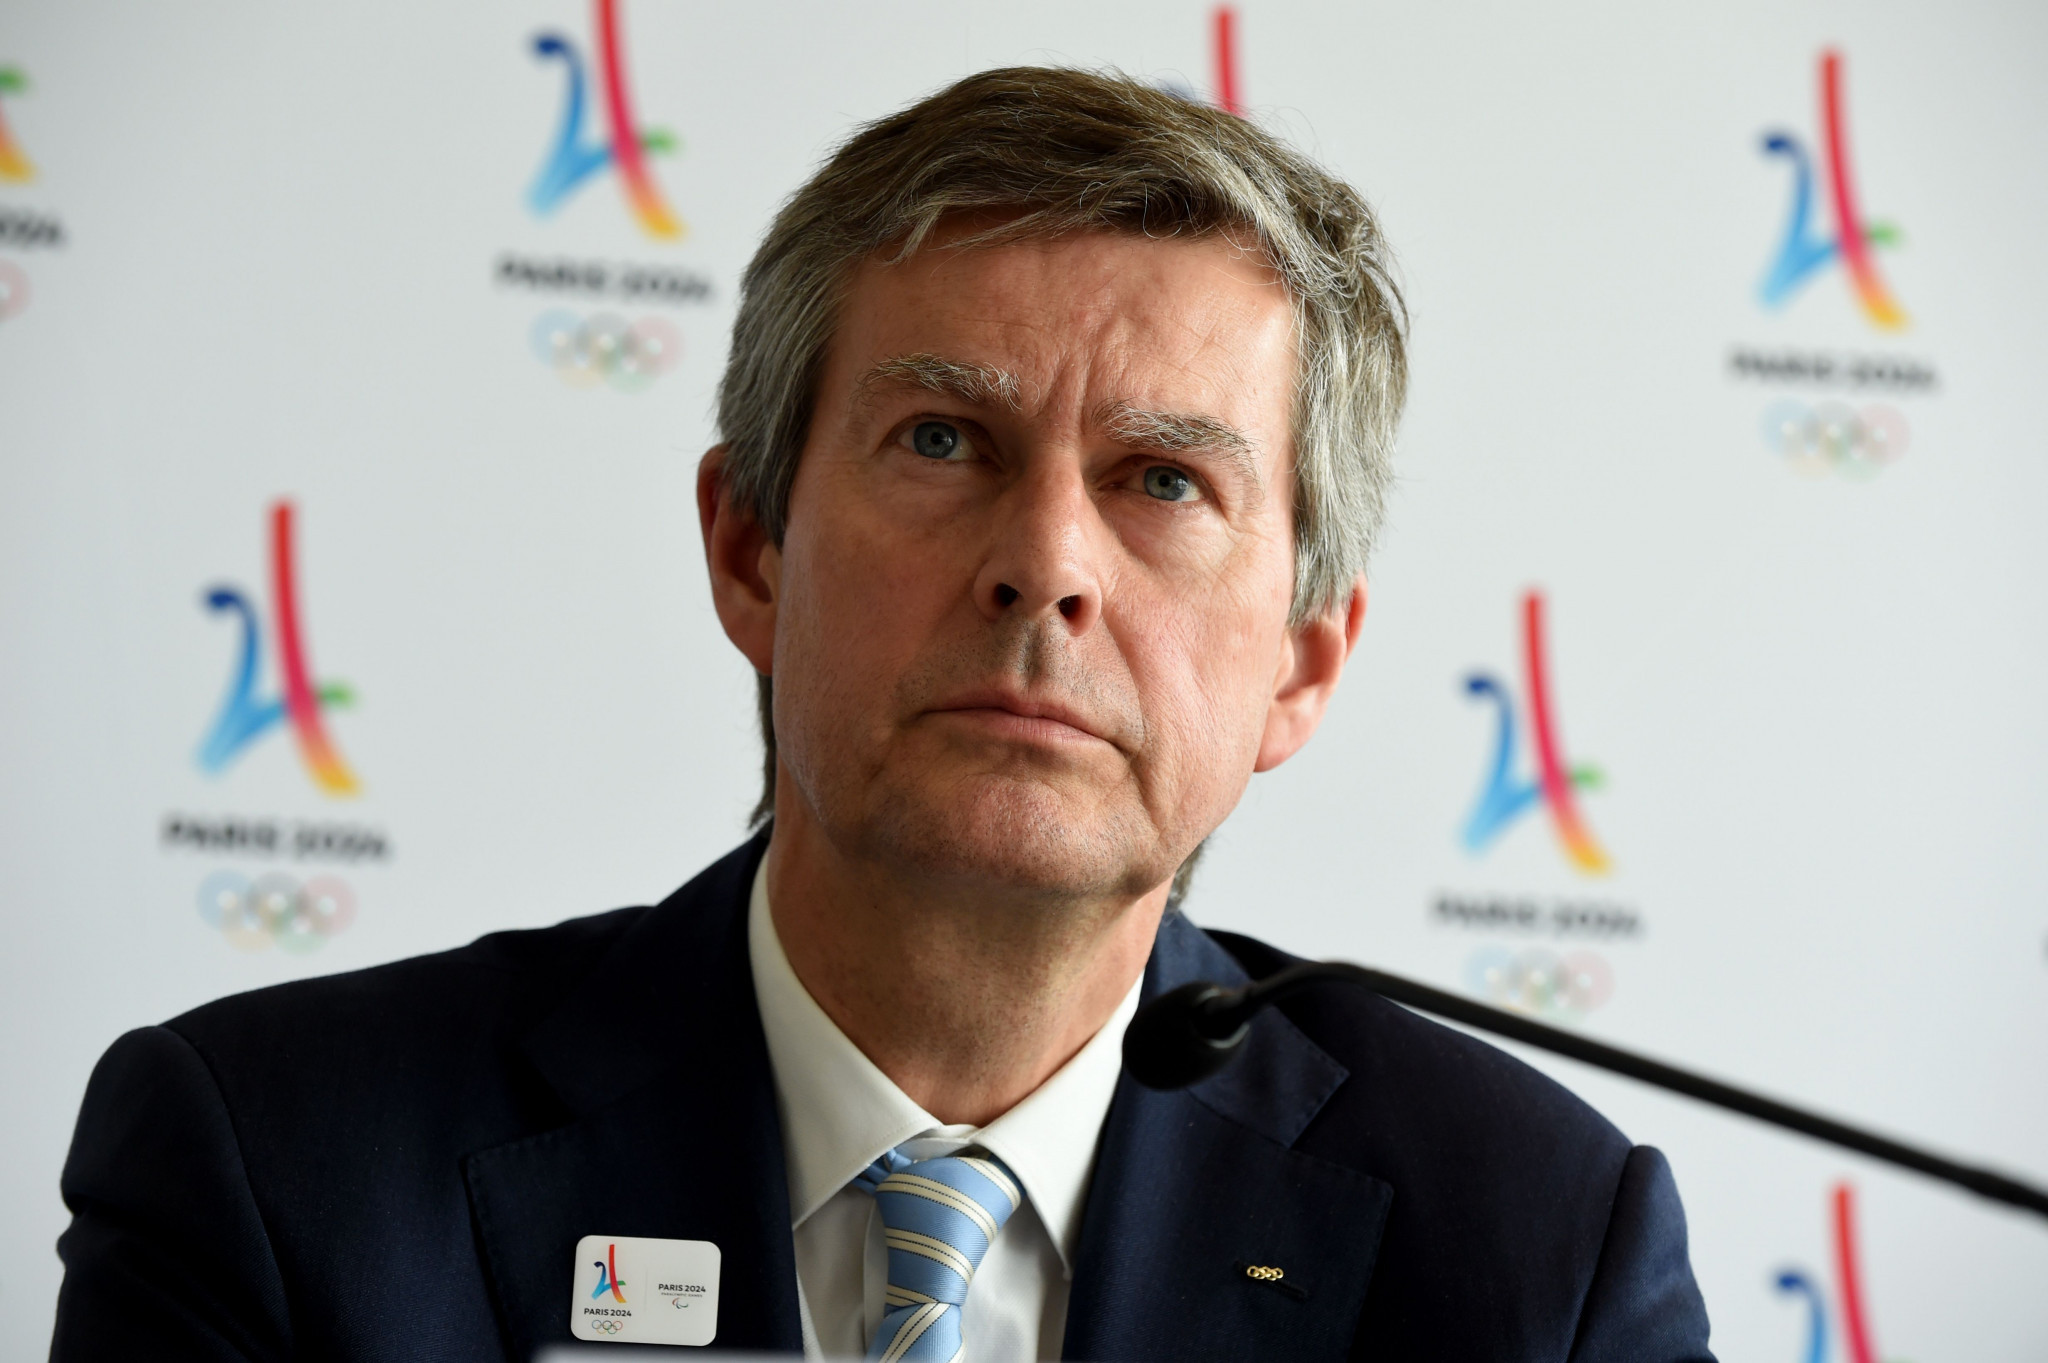 Paris 2024 IOC Coordination Commission chair Beckers-Vieujant stresses importance of visiting Marseille